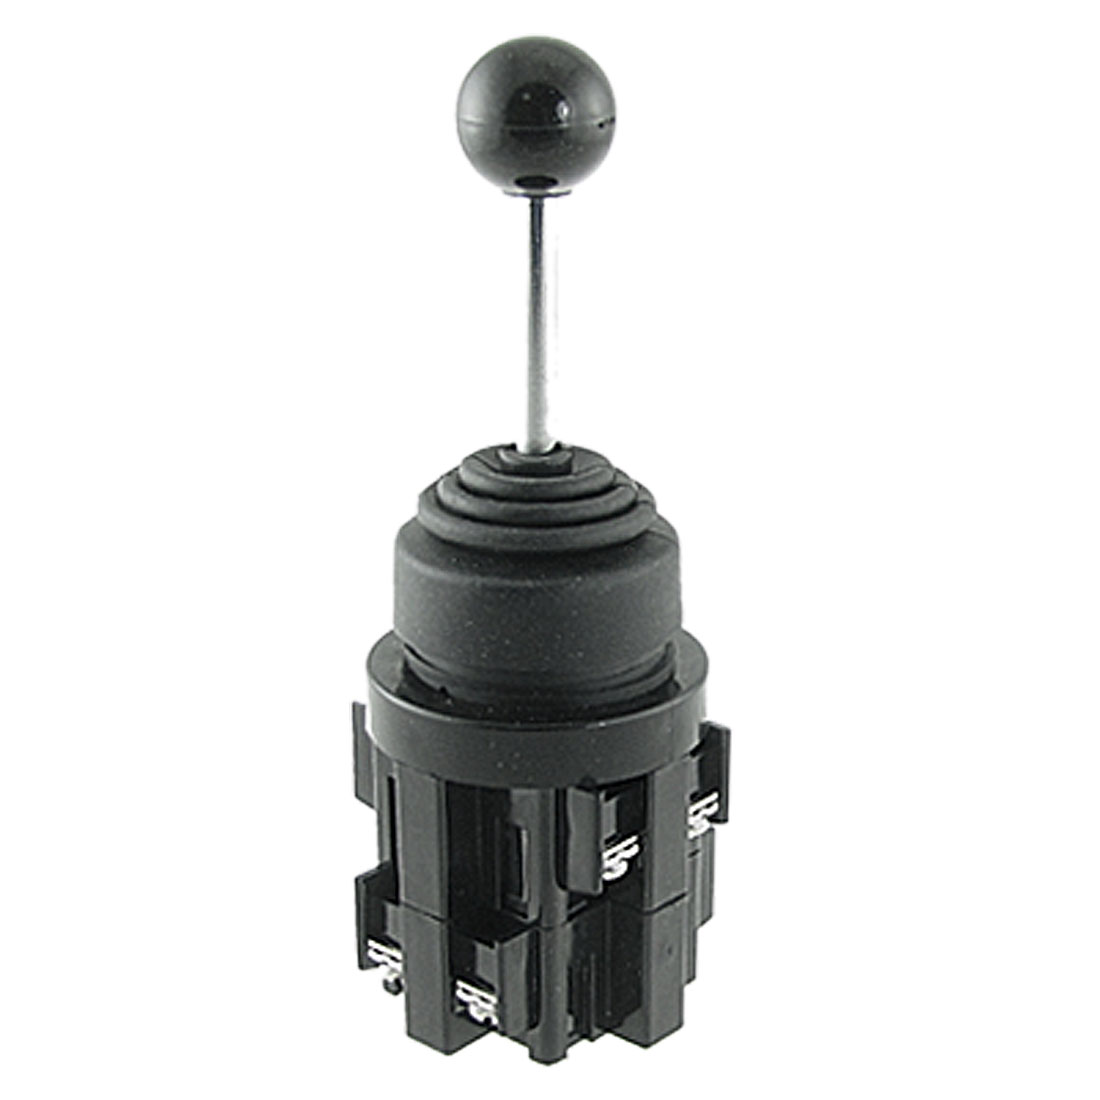 4NO 4 Position SPST Momentary Joystick Wobble Monolever Switch